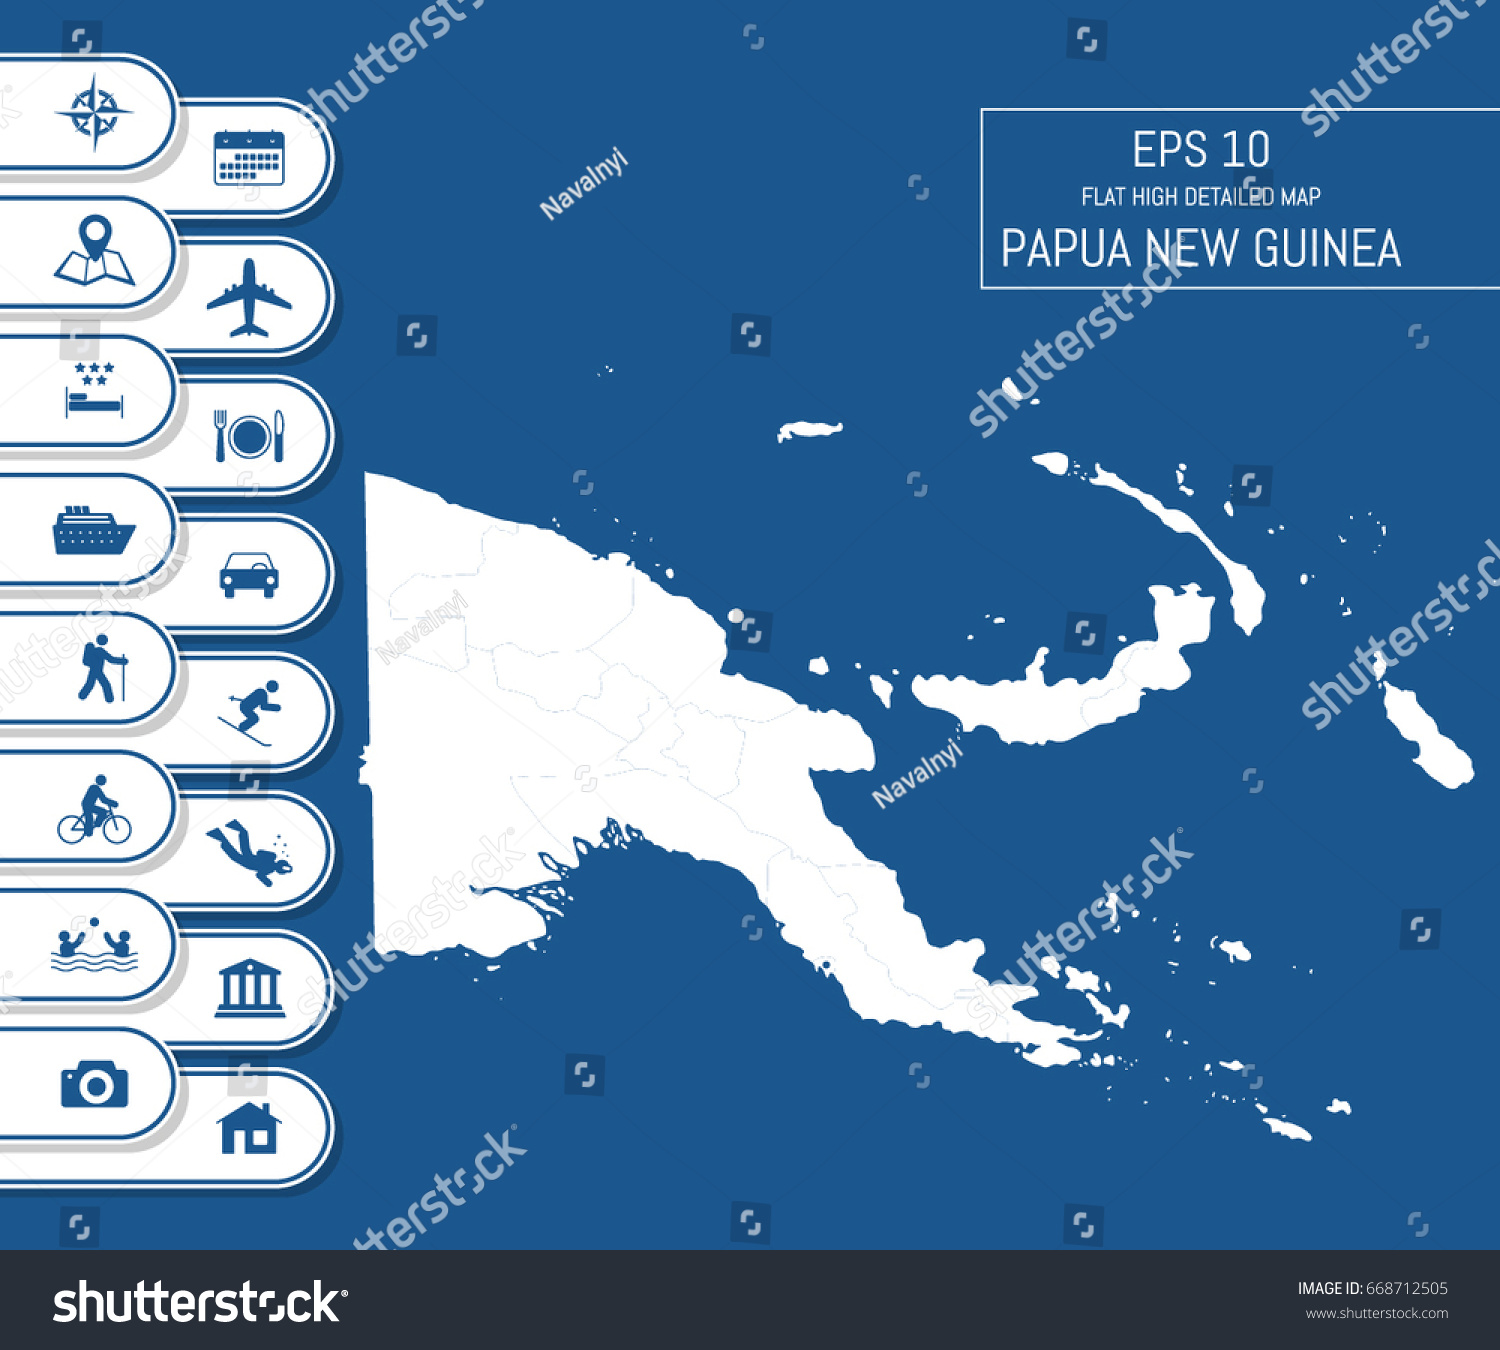 Flat High Detailed Papua New Guinea Stock Vector 668712505